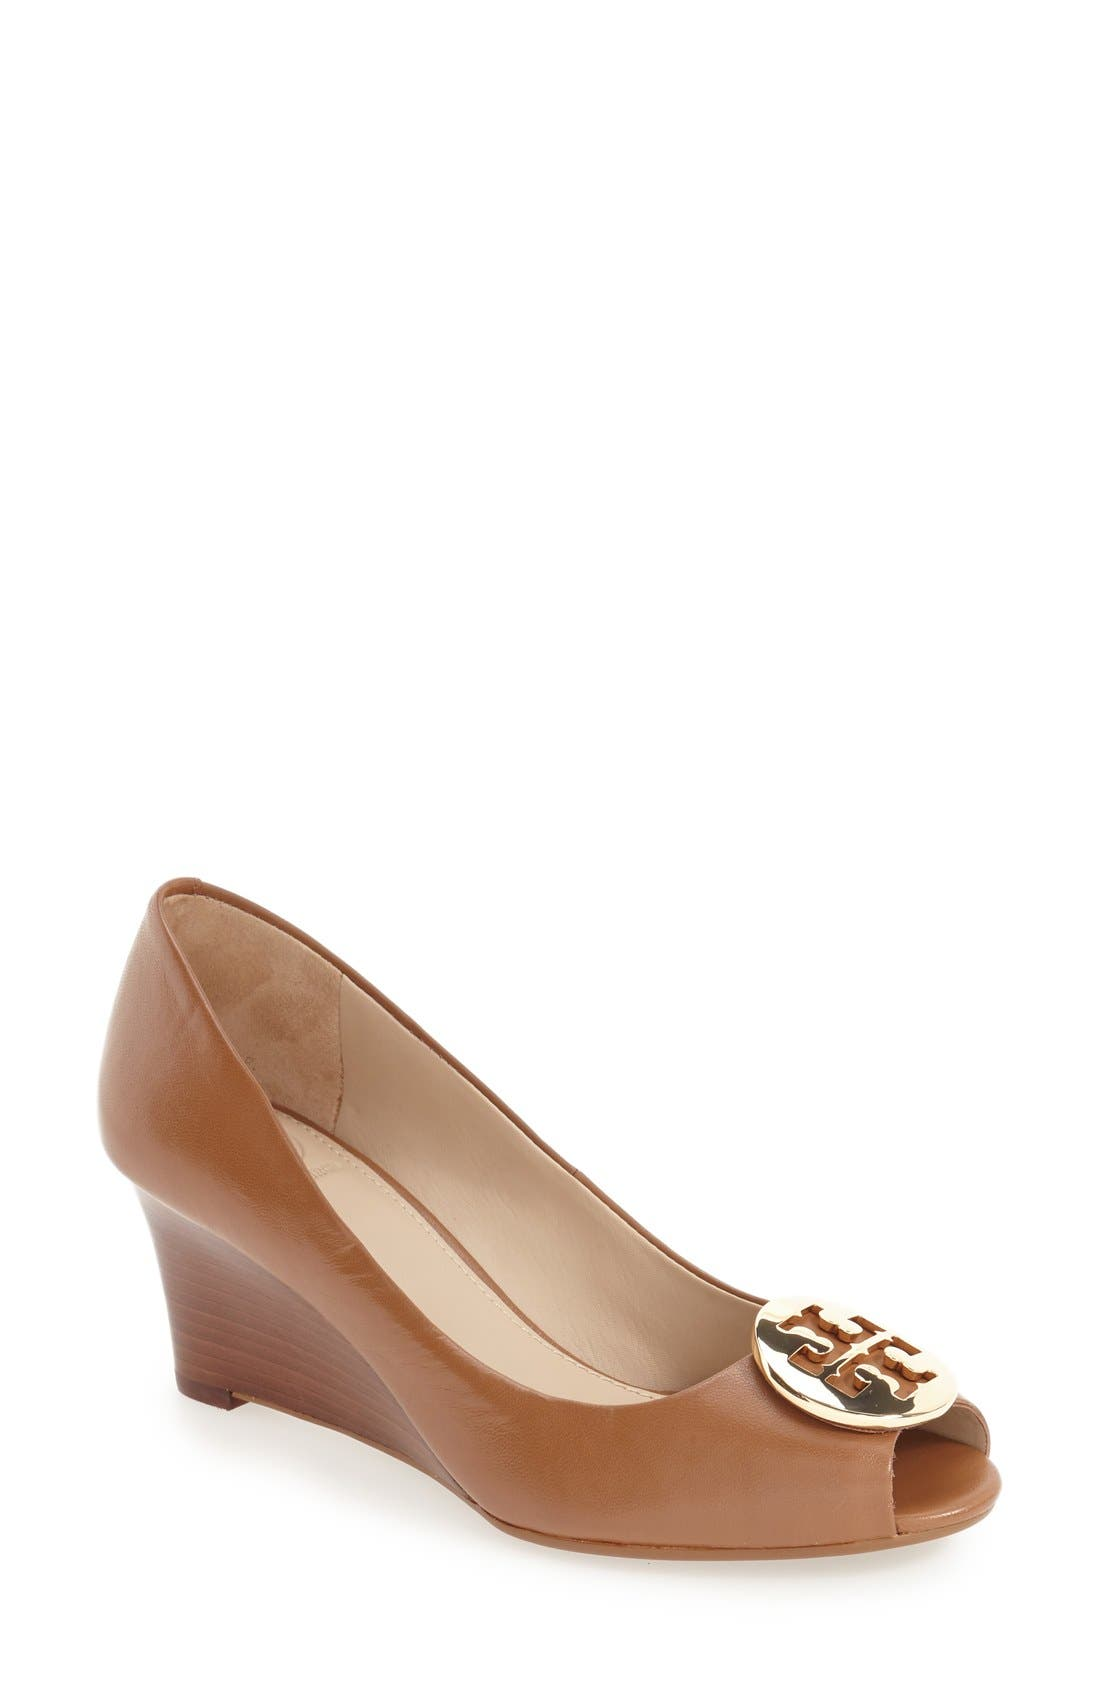 Alternate Image 1 Selected - Tory Burch 'Kara' Wedge Pump (Women)